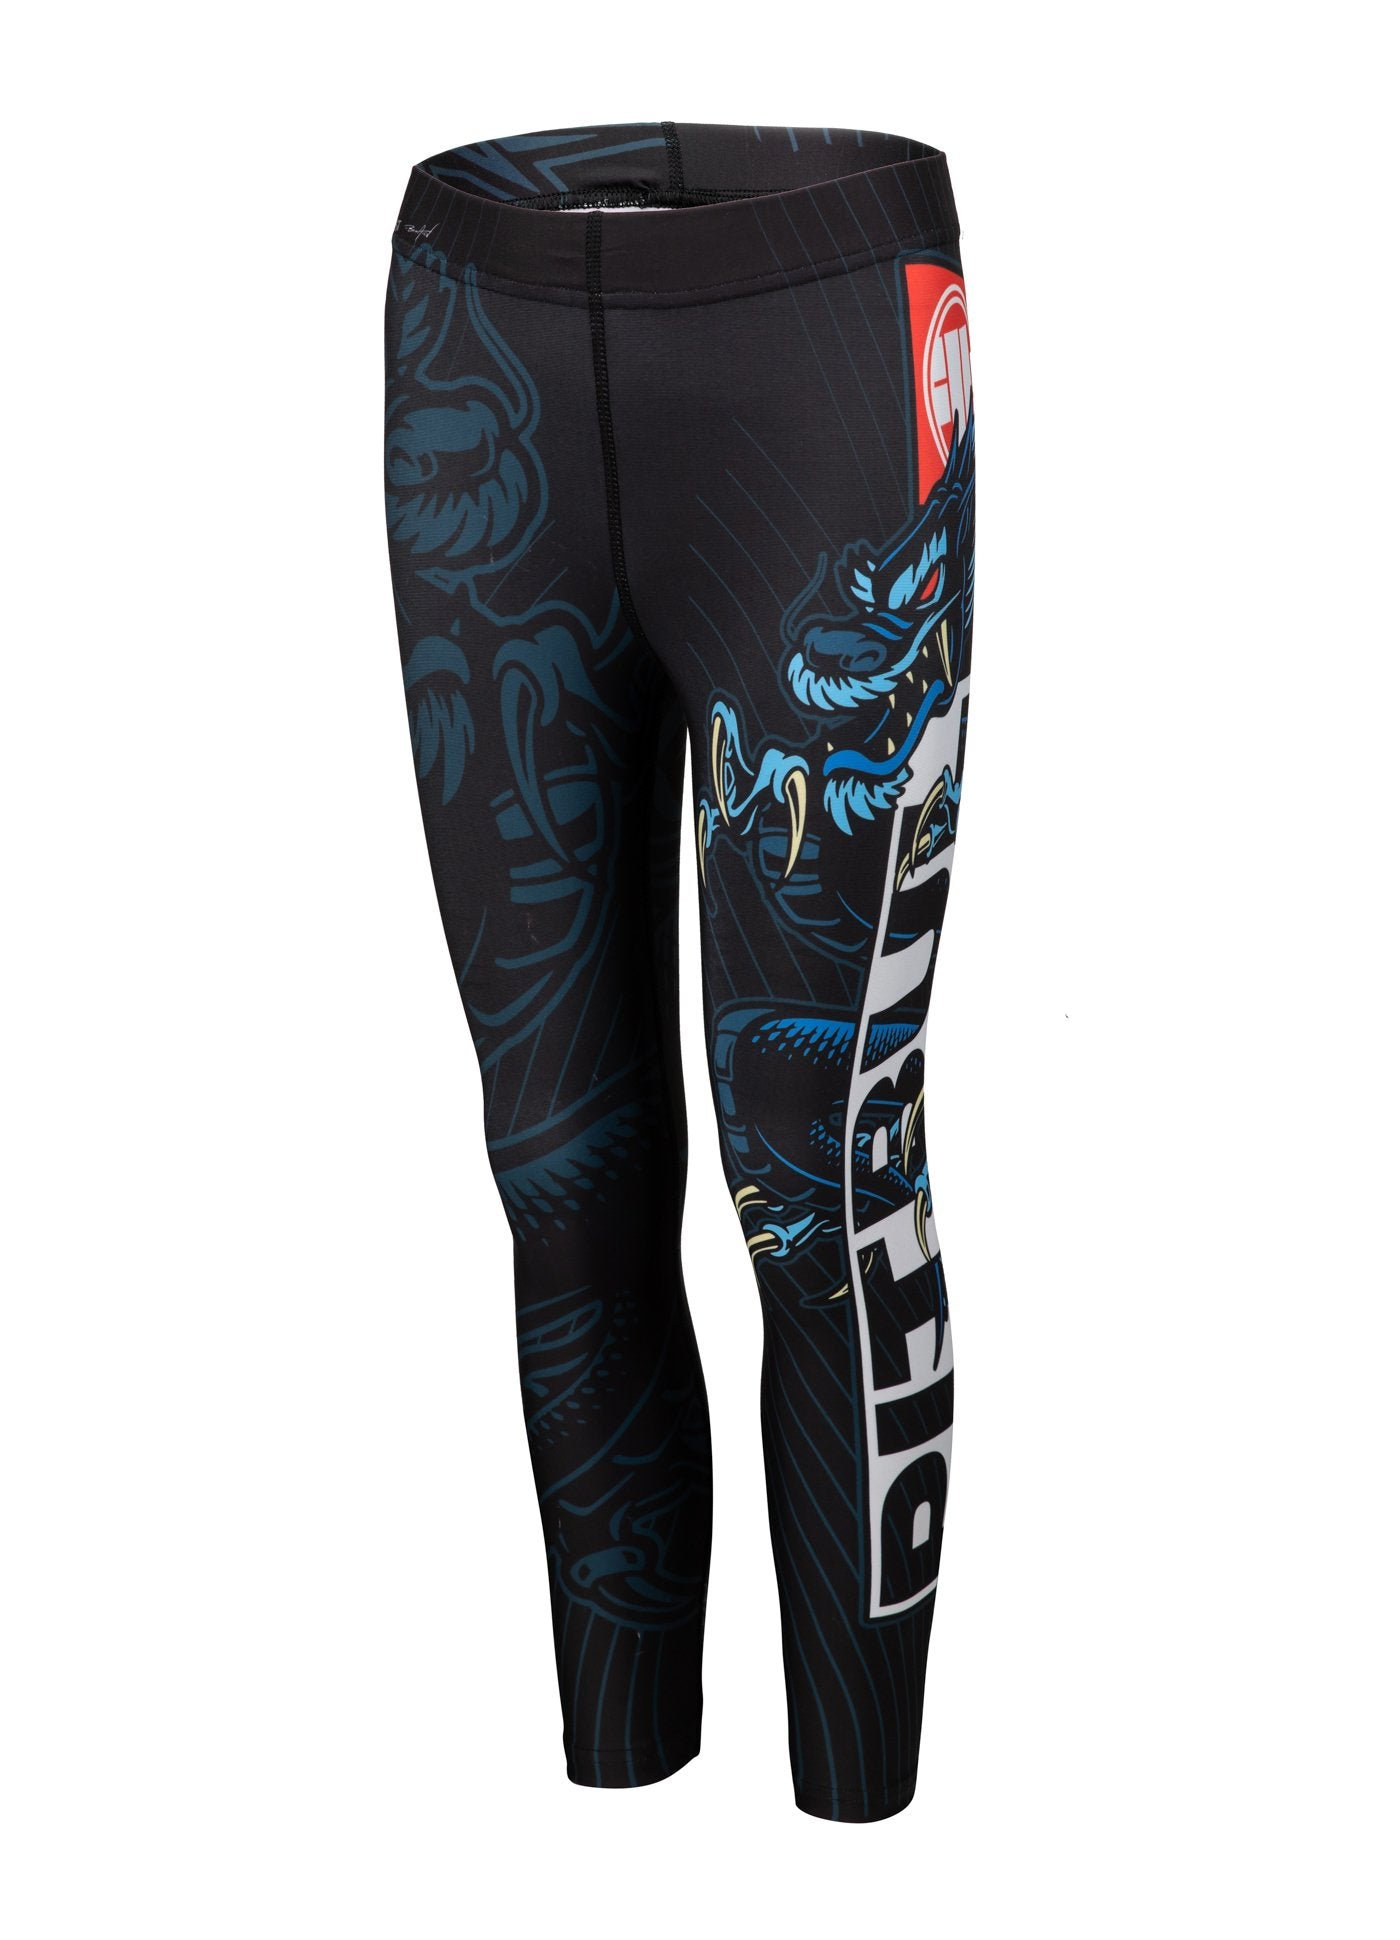 Kids Compression Pants BLUE DRAGON Black - Pitbull West Coast U.S.A.